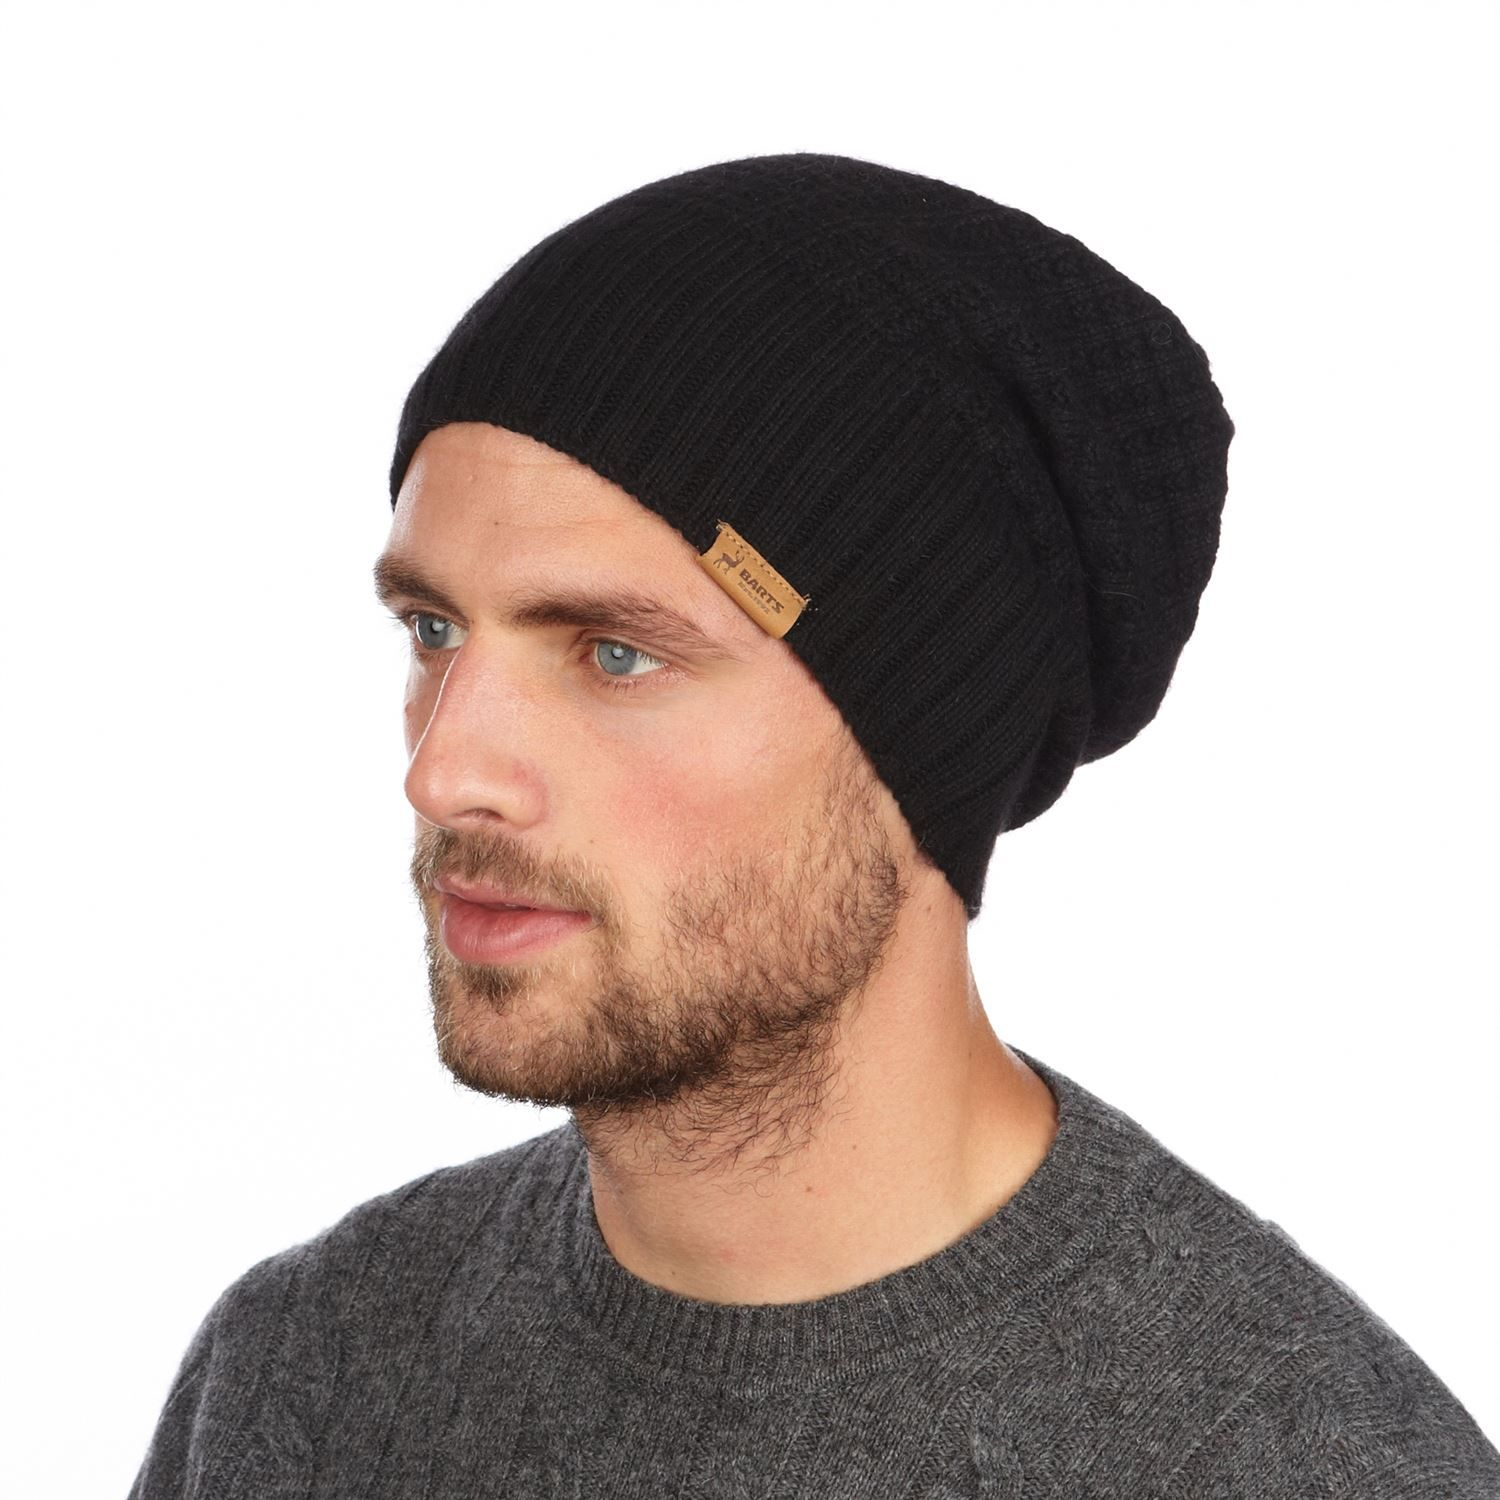 39b8d178af8 Beanie(Unisex)  A round loose fitting hat.